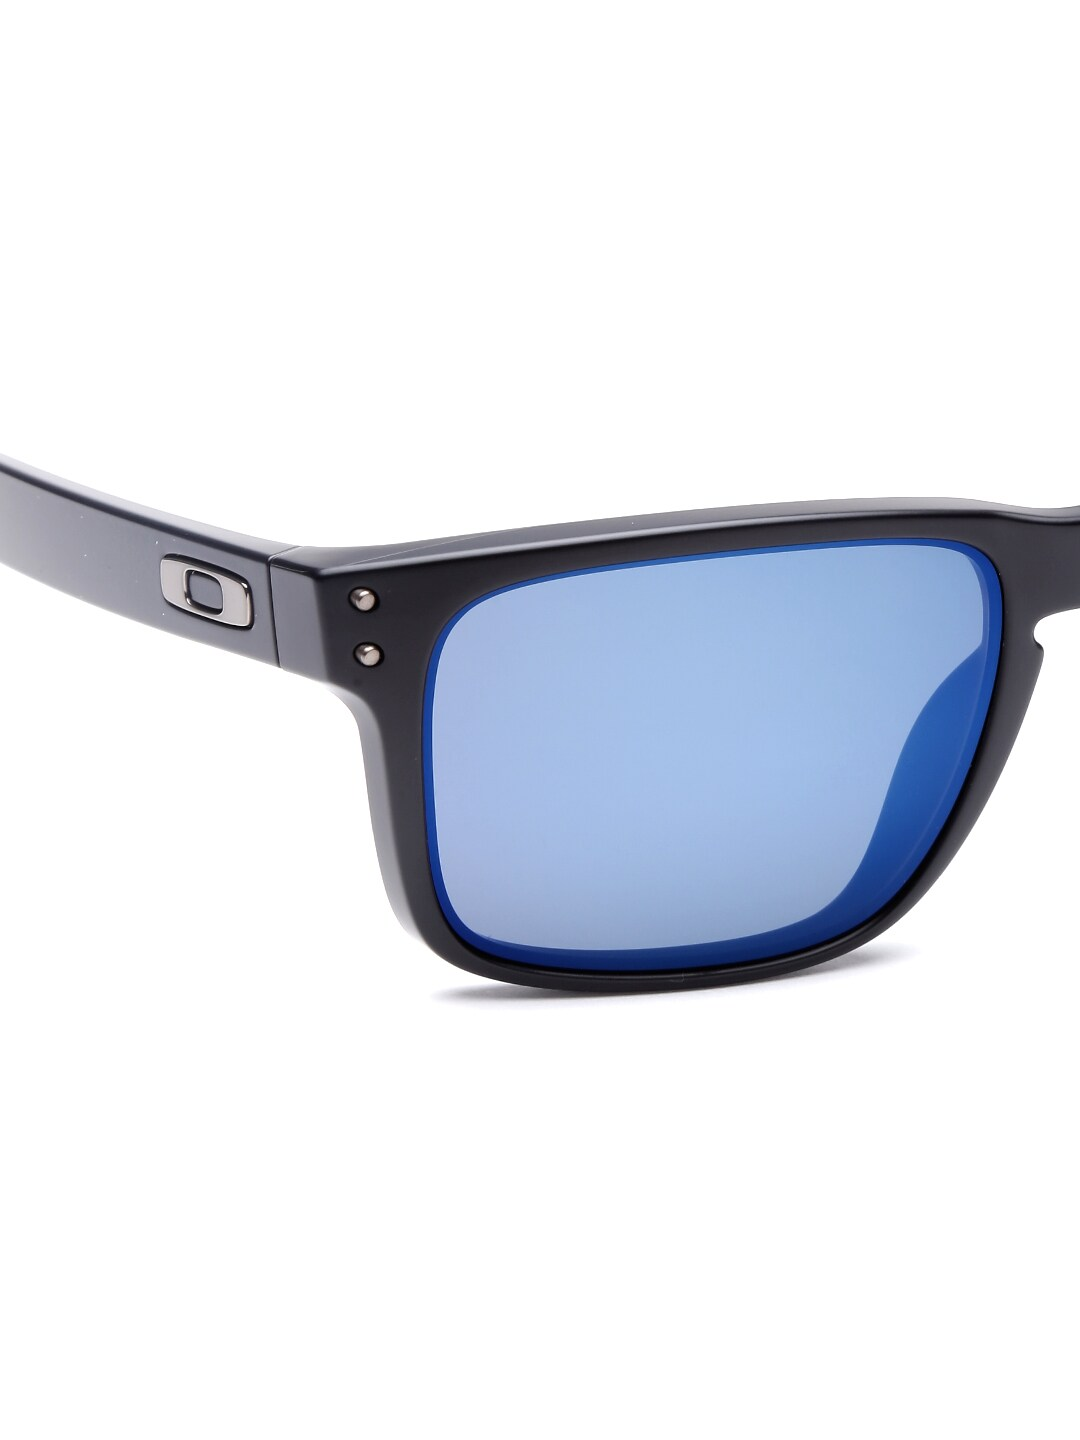 oakley sunglasses price in india  Oakley - Exclusive Oakley Online Store in India at Myntra